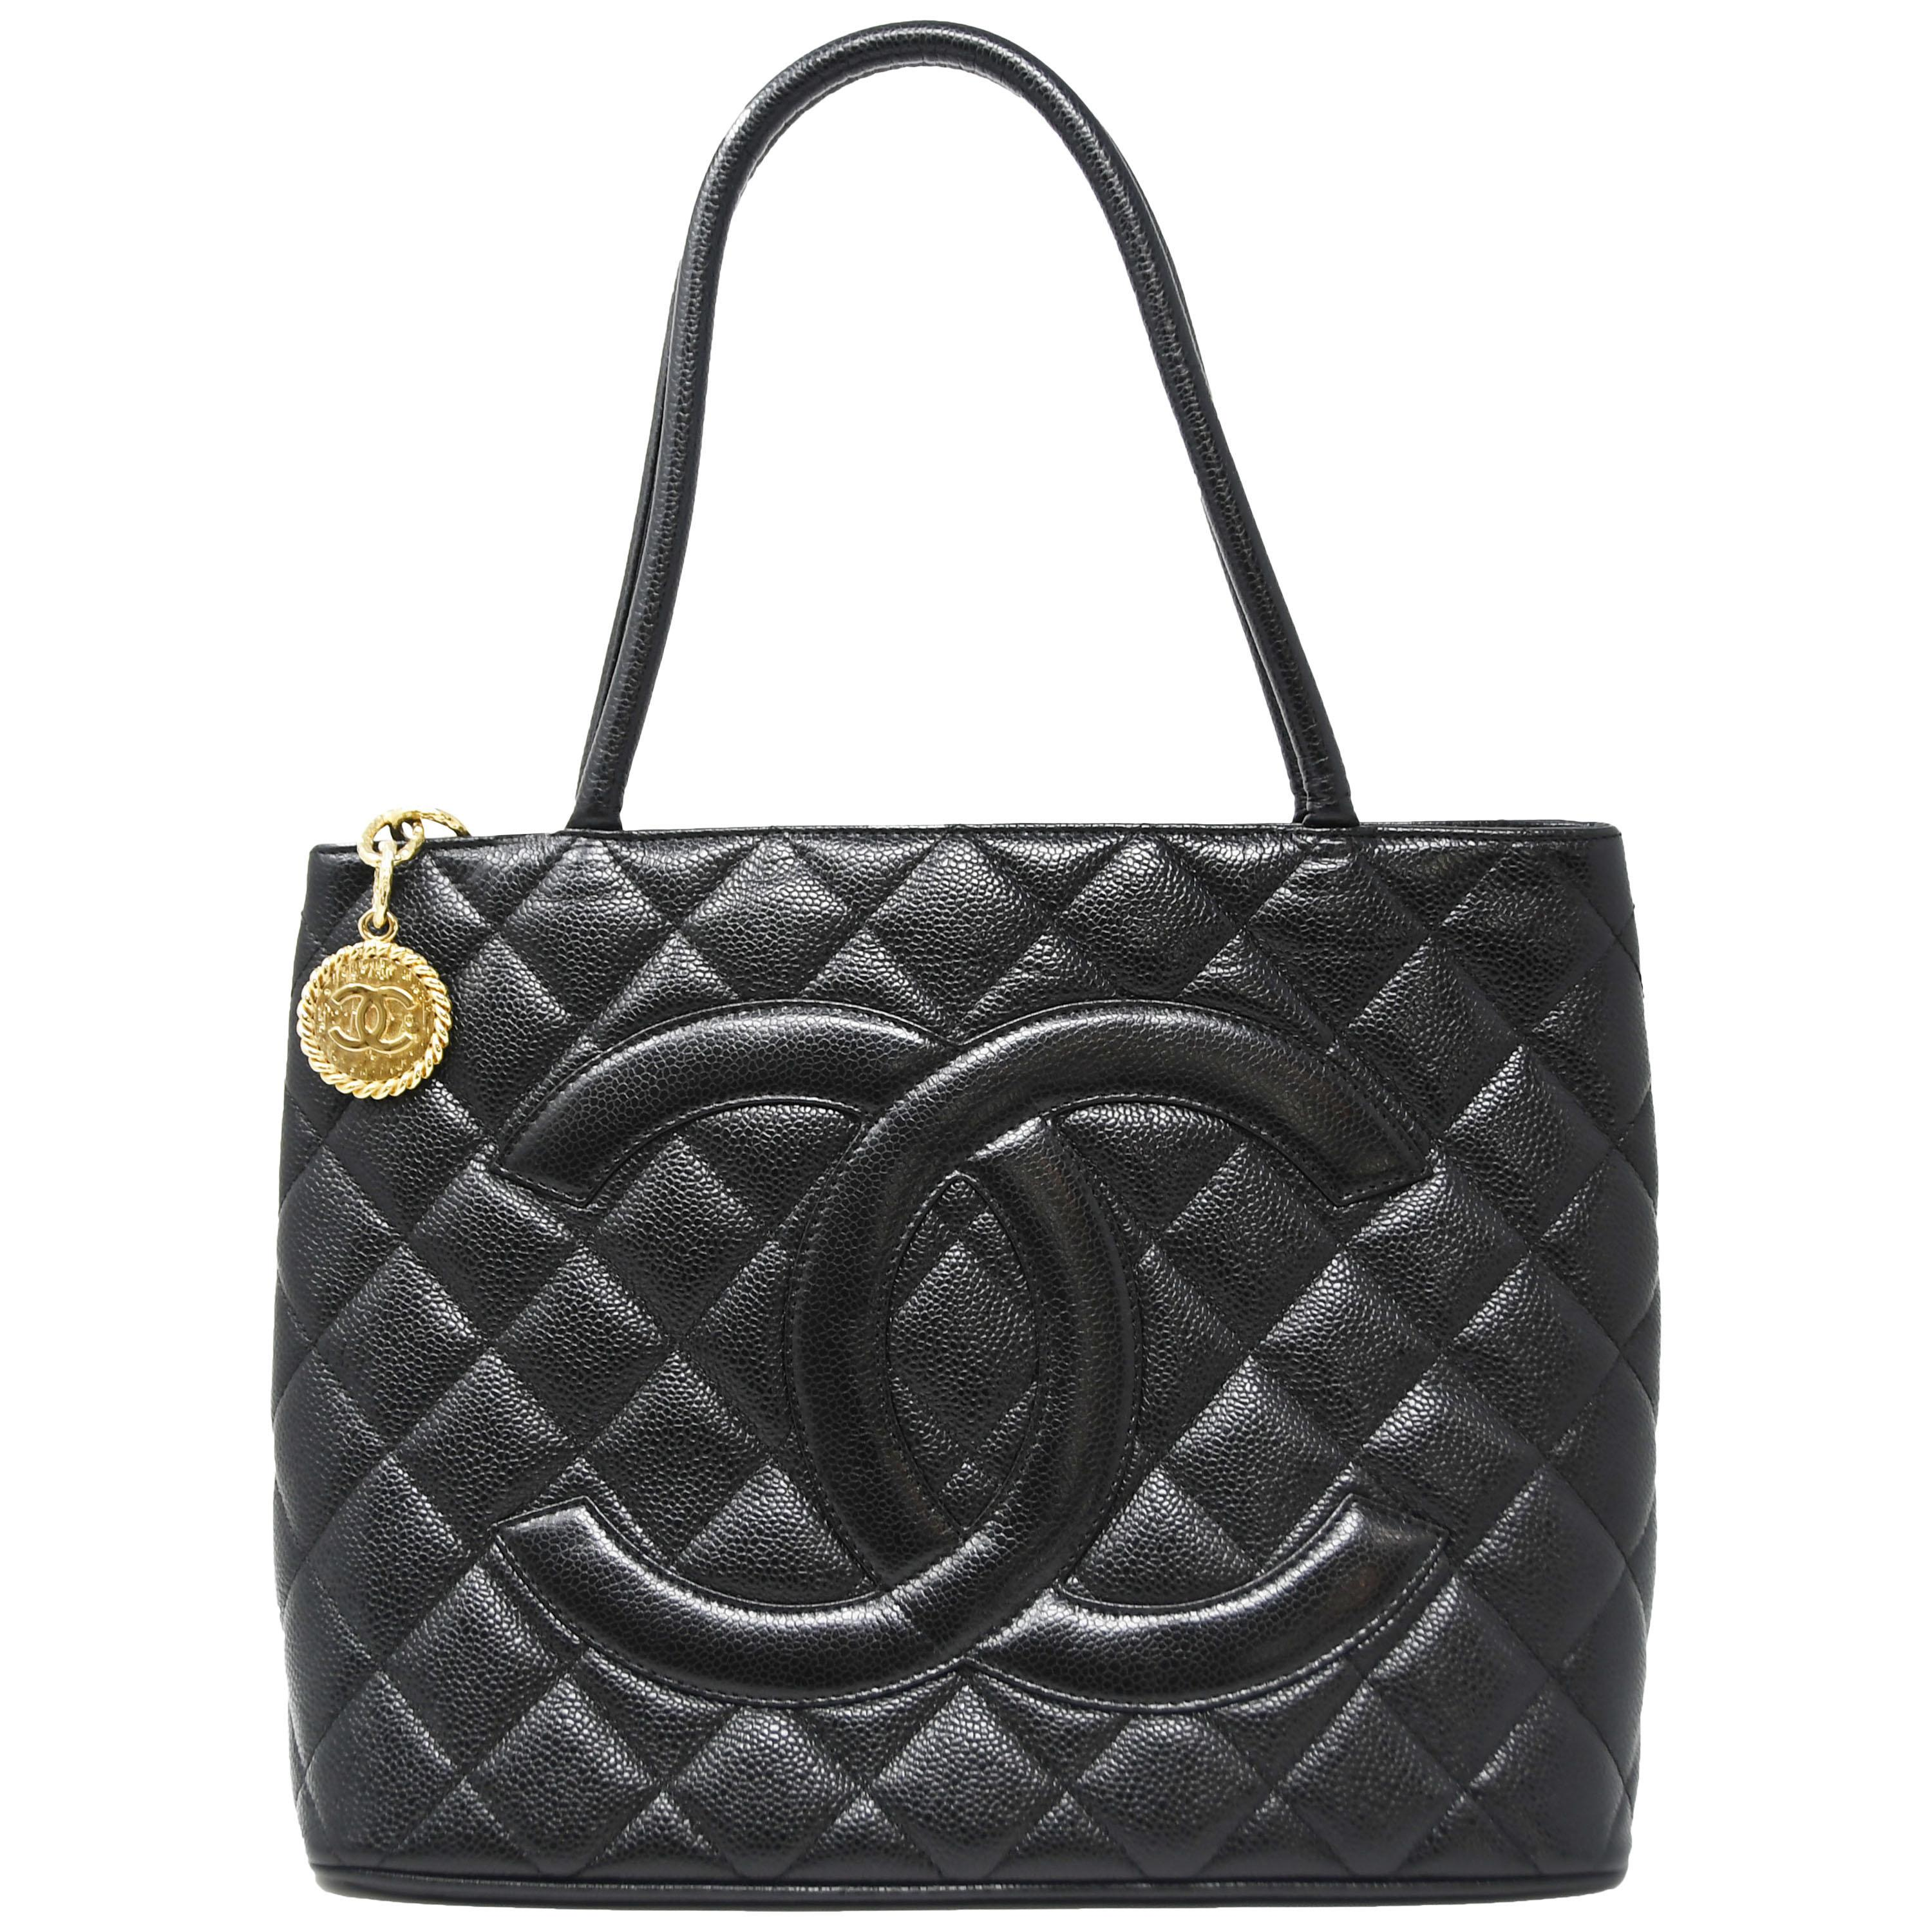 97c40d964902 Chanel Essential 31 Rue Cambon Shopping Tote Leather Medium at 1stdibs